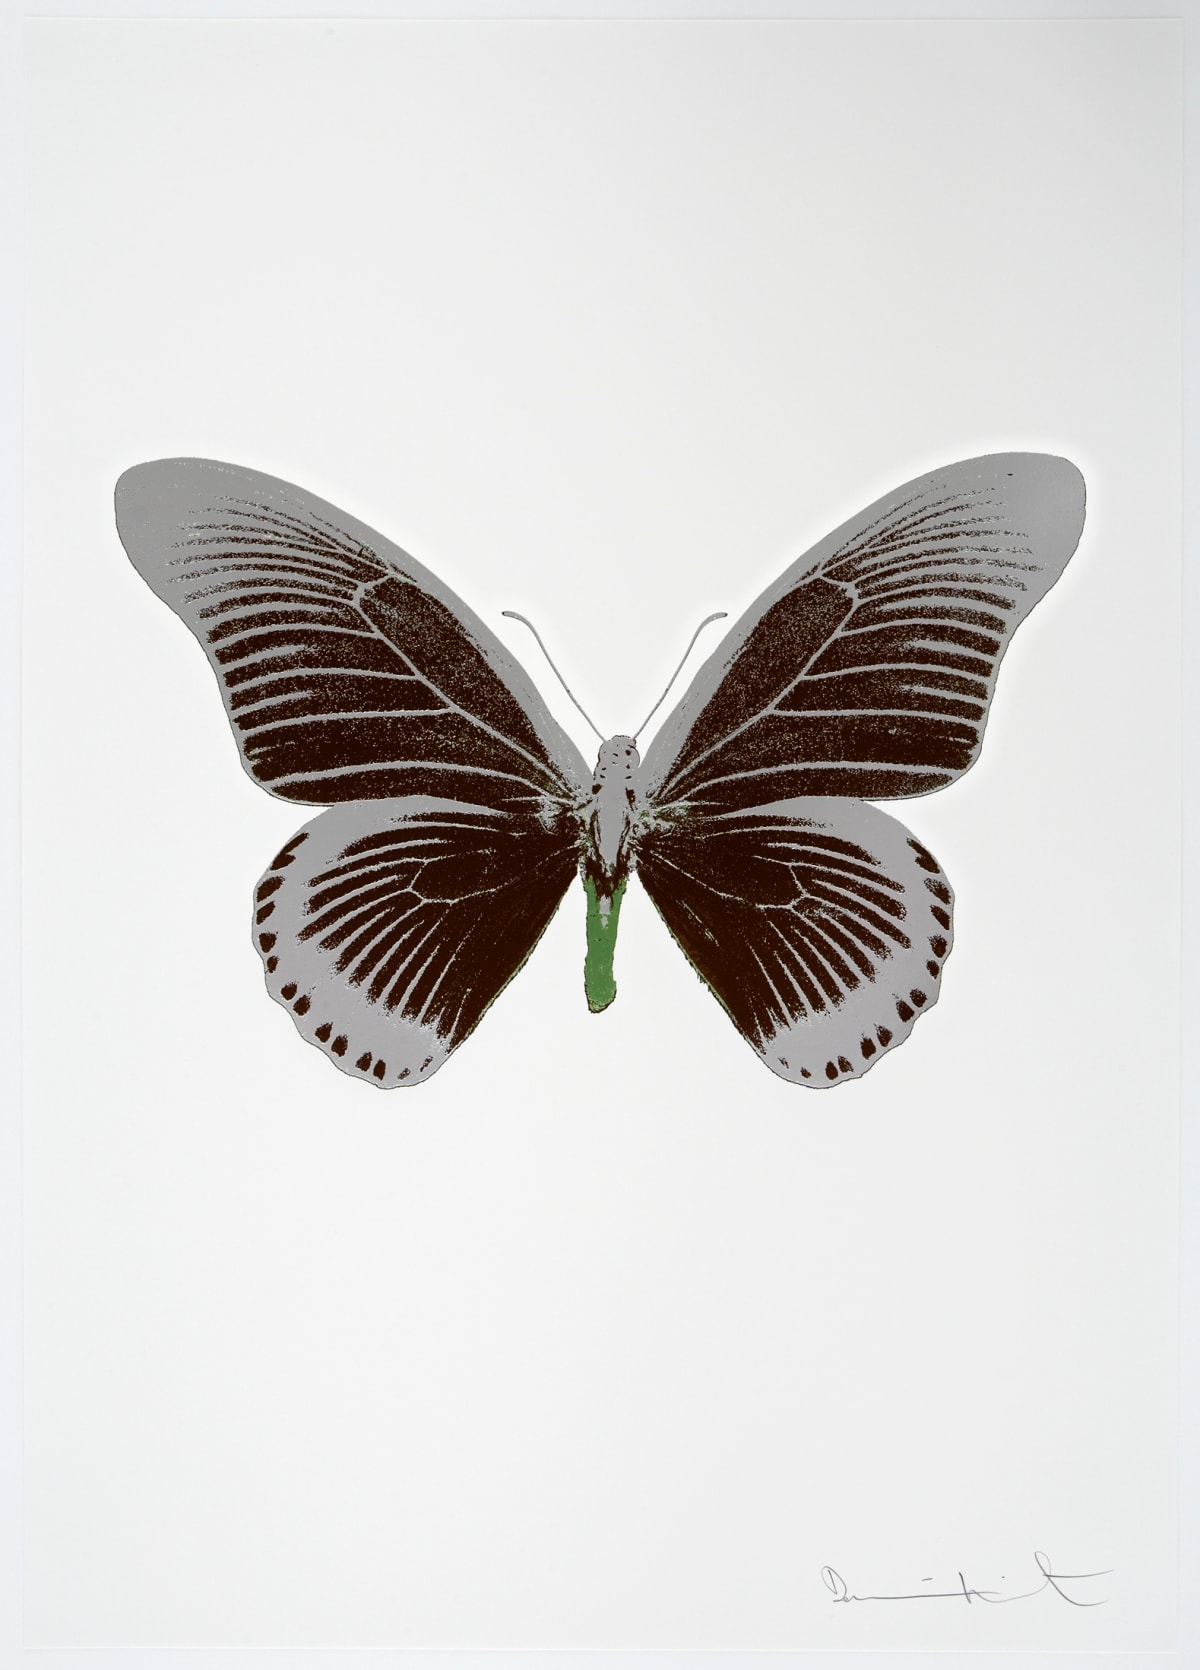 Damien Hirst The Souls IV - Chocolate/Silver Gloss/Leaf Green, 2010 3 colour foil block on 300gsm Arches 88 archival paper. Signed and numbered. Published by Paul Stolper and Other Criteria 72 x 51cm OC8037 / 1418-60 Edition of 15